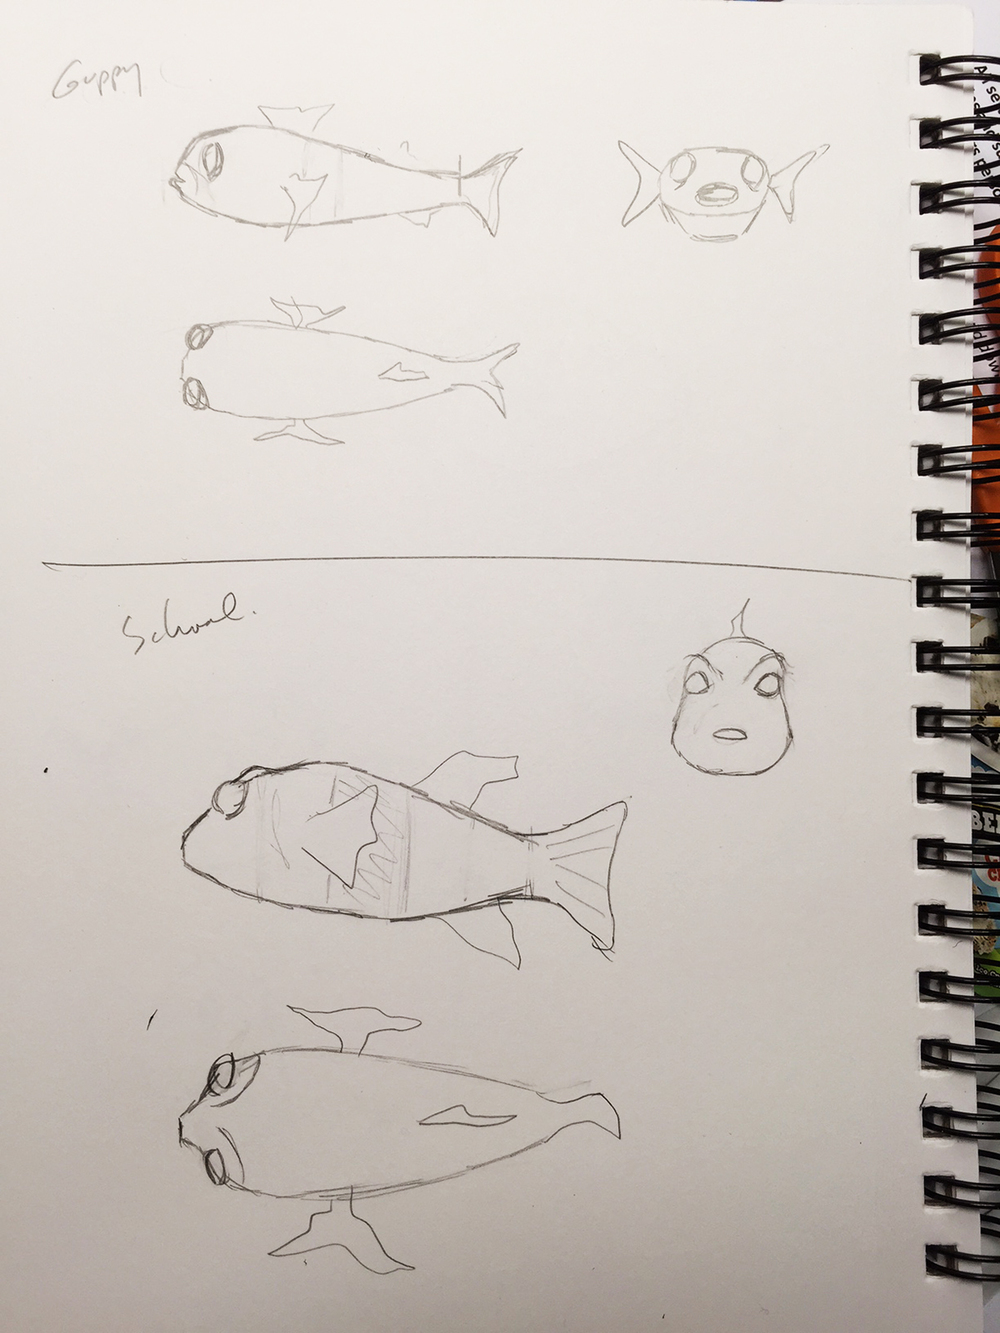 Sketches for Guppy.